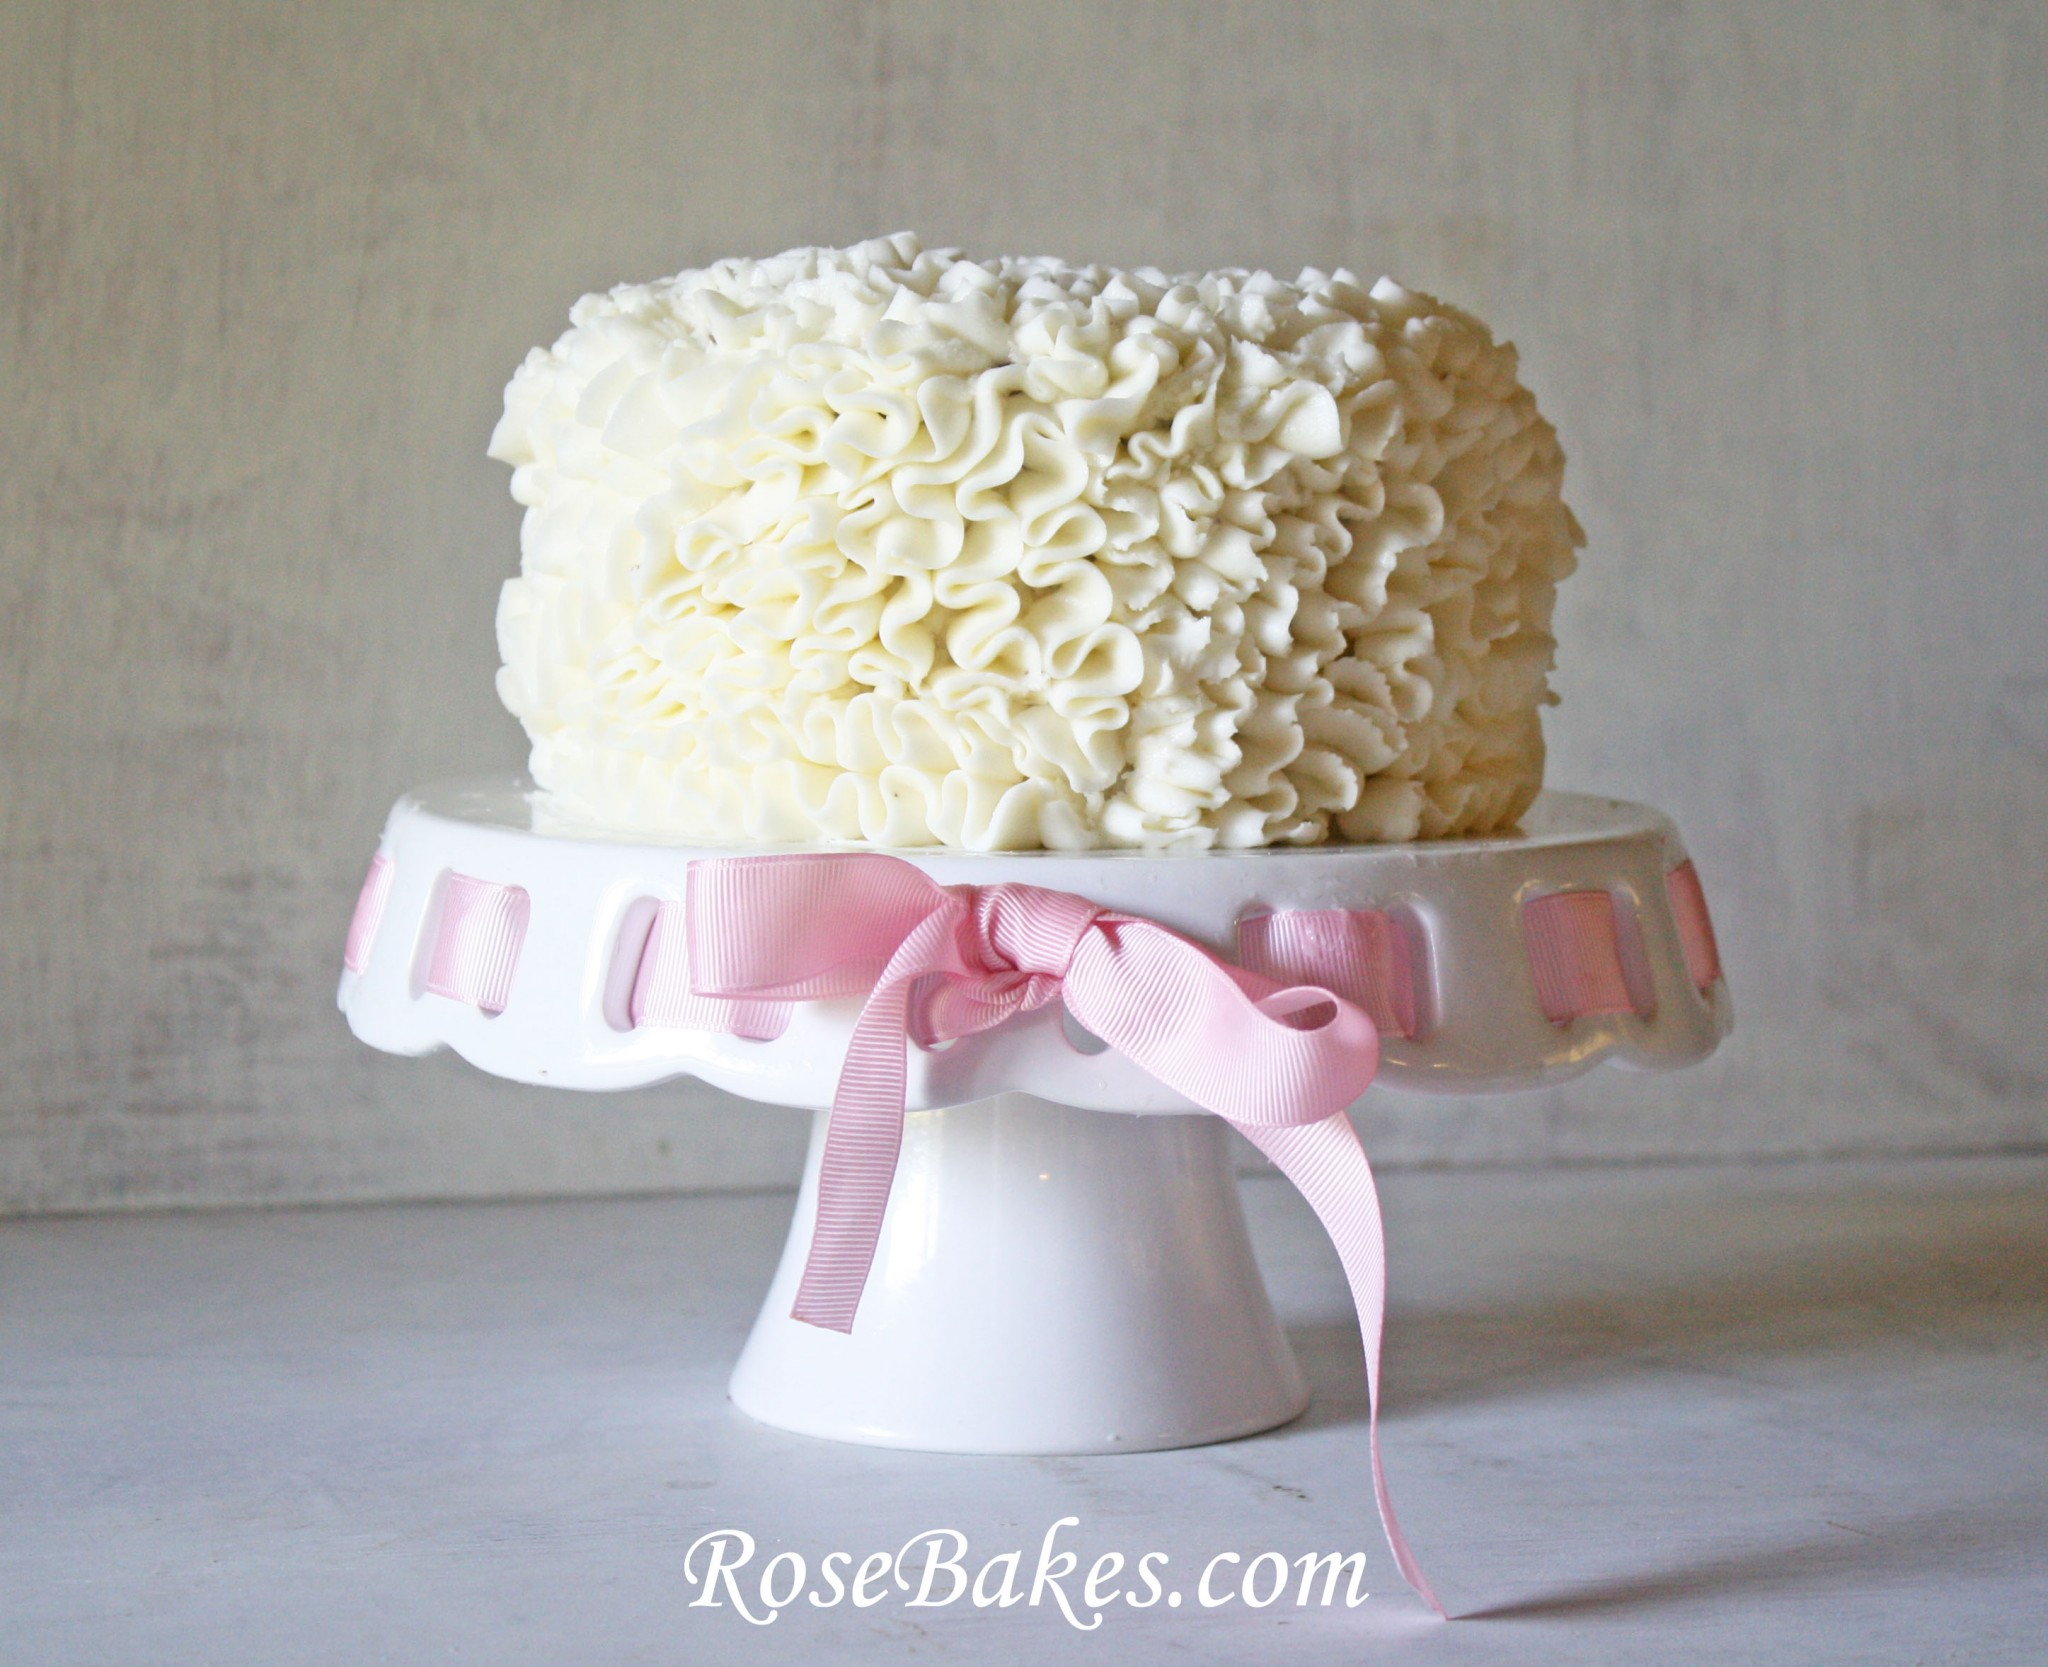 Messy ruffles cake decorating video tutorial for Baking decoration